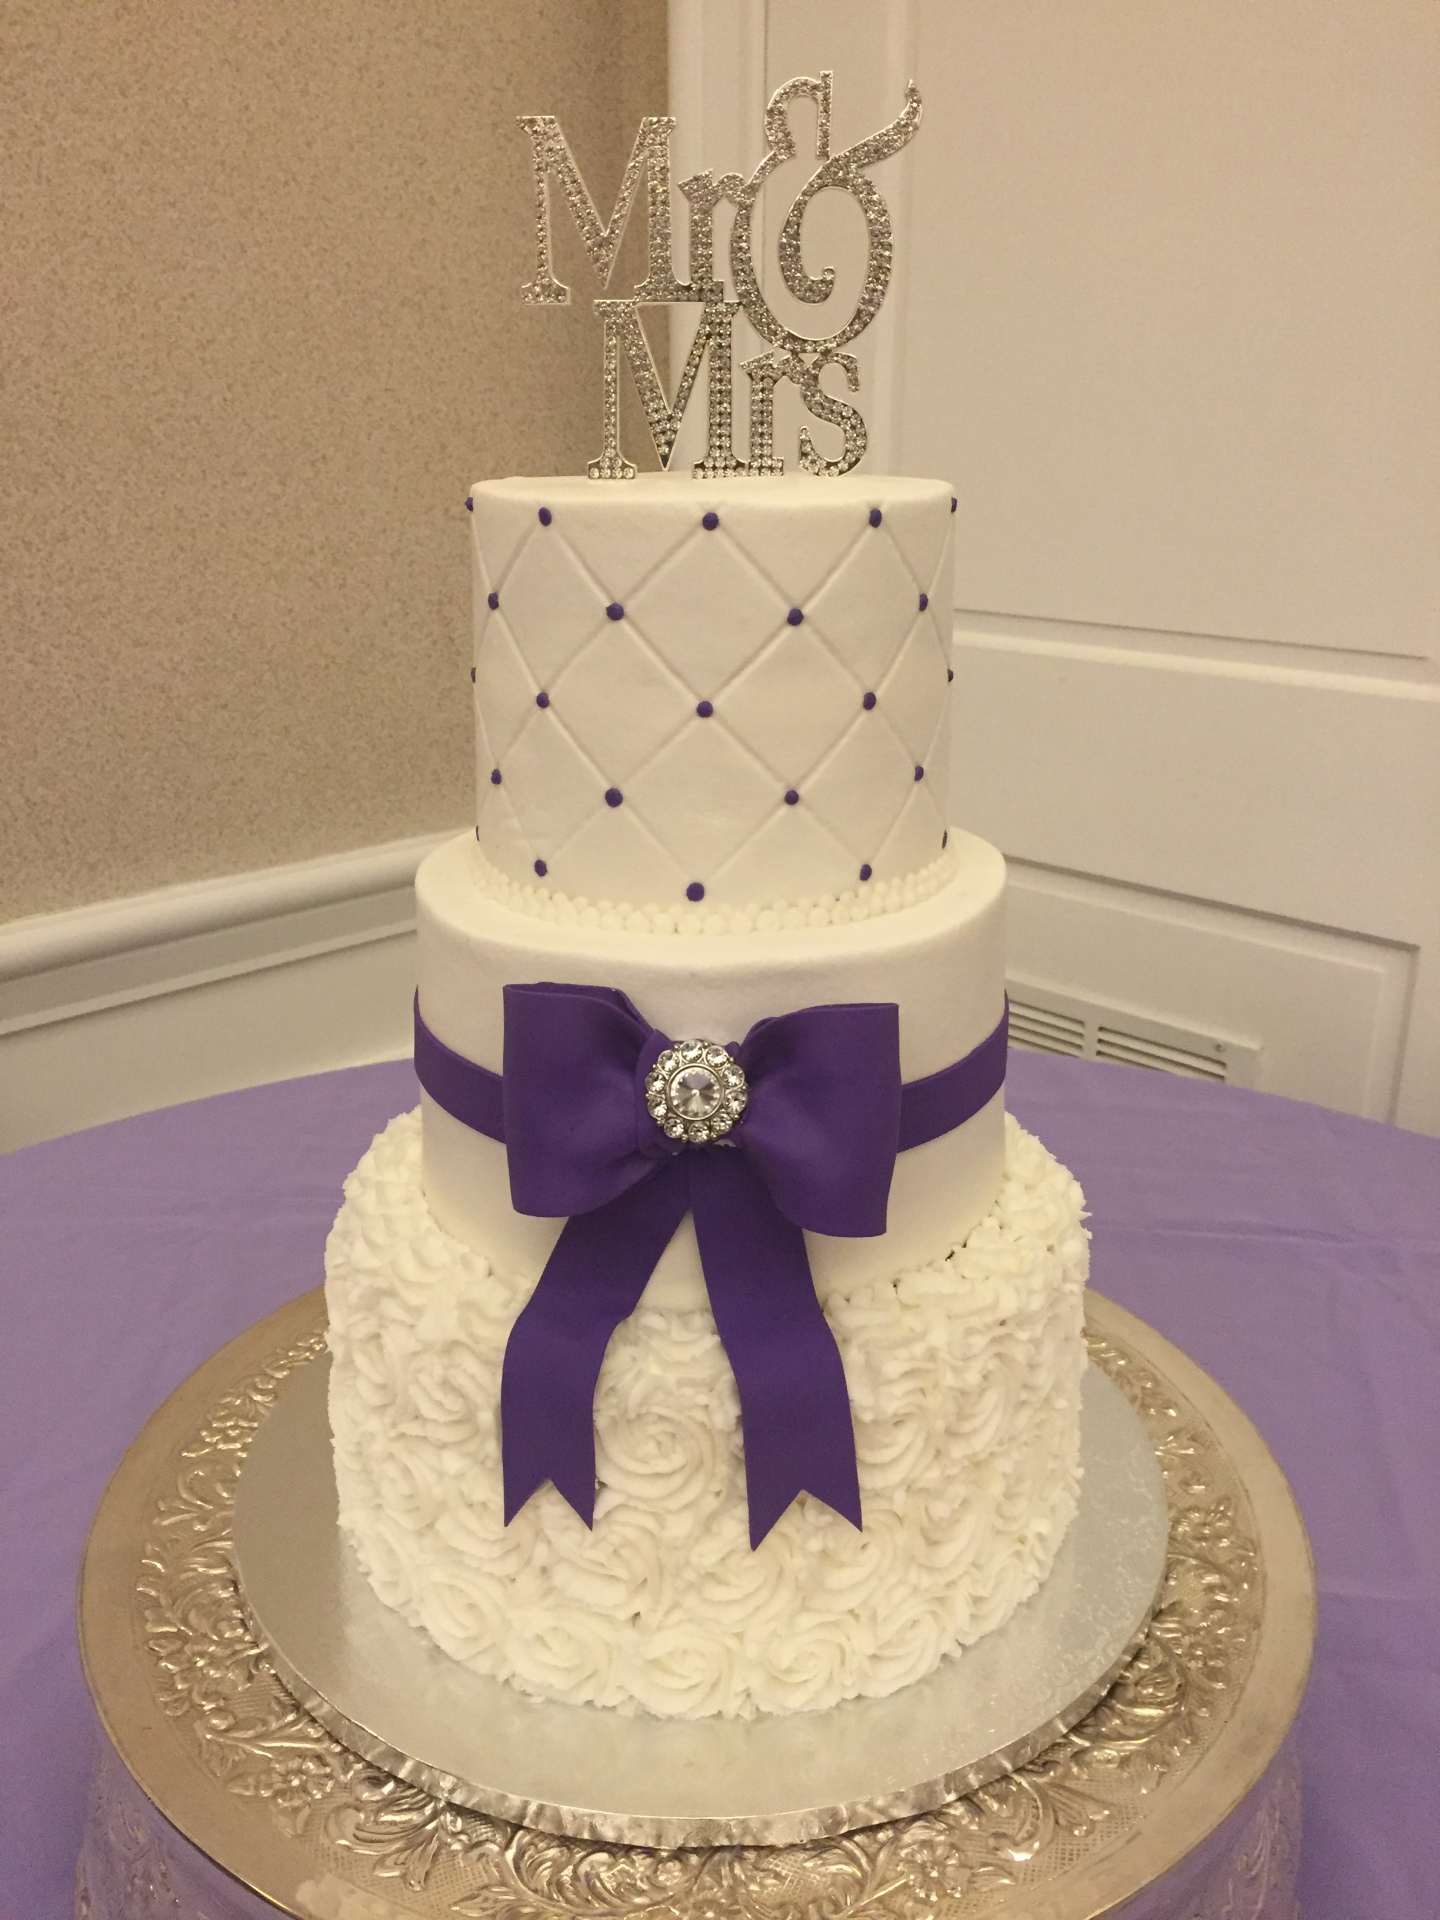 White rosettes and purple bow